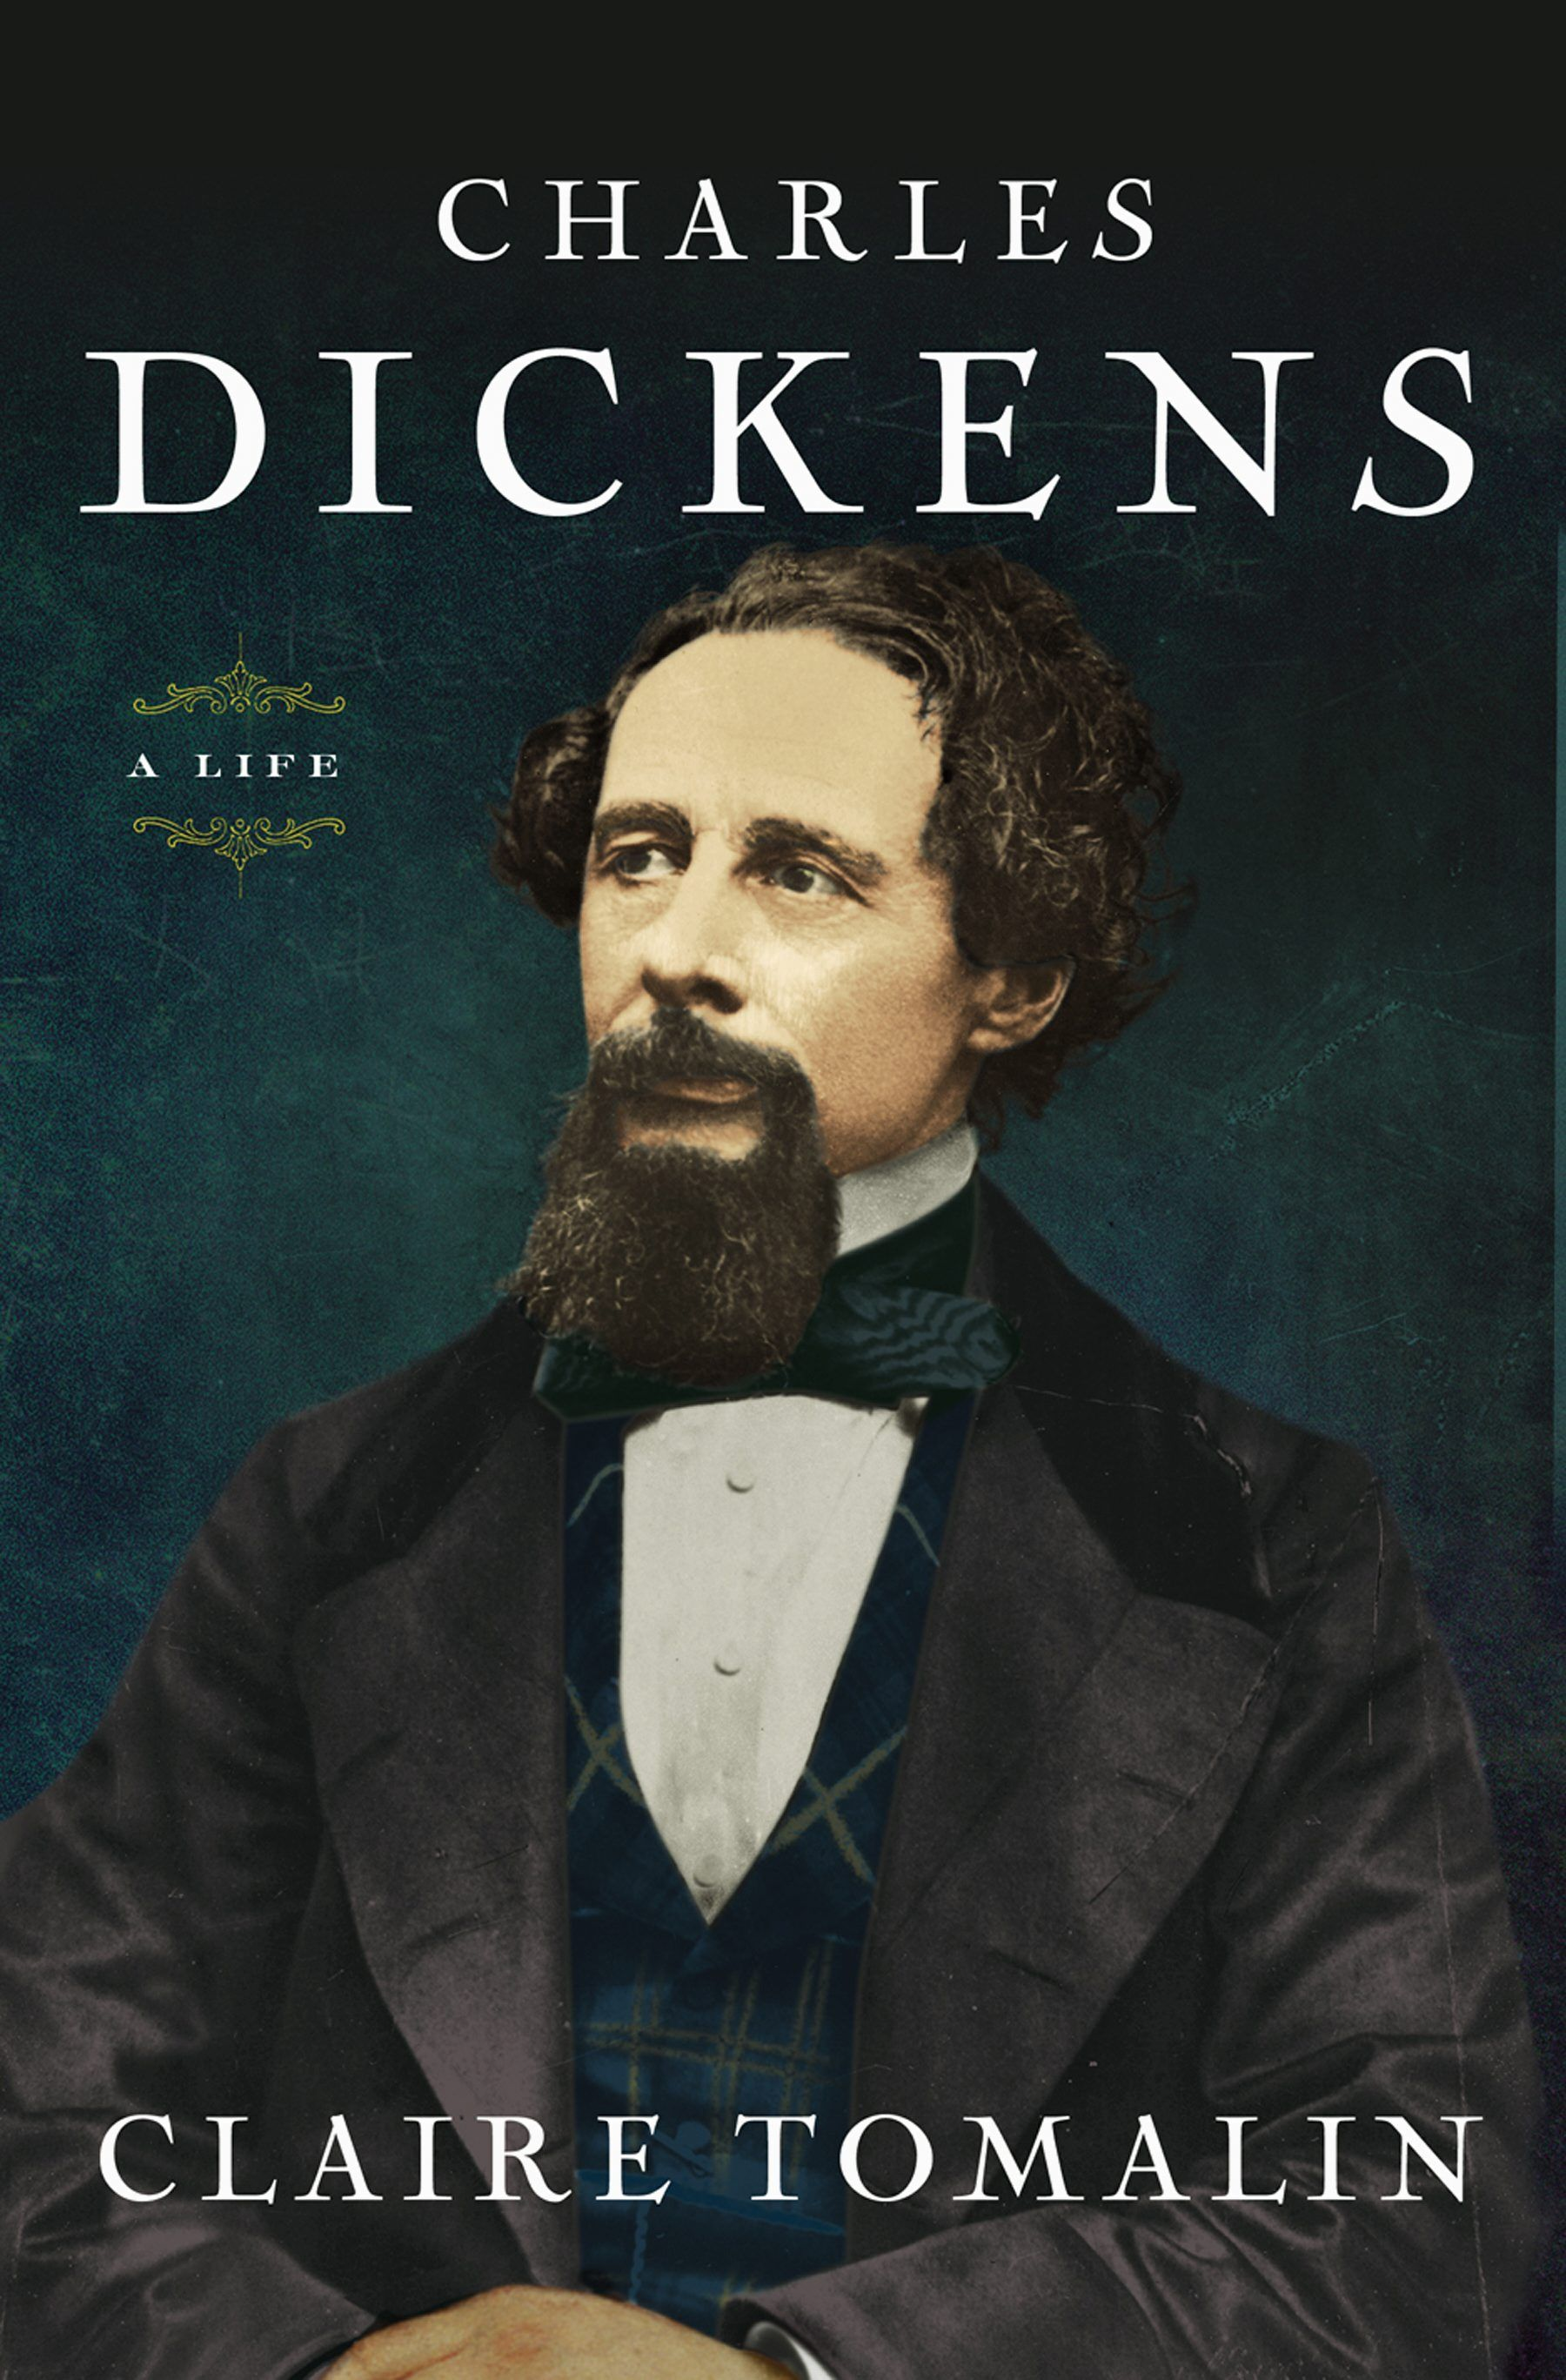 summary of david copperfield scribere est agere six books on my  book review charles dickens a life washington times file peggotty from charles dickens david copperfield